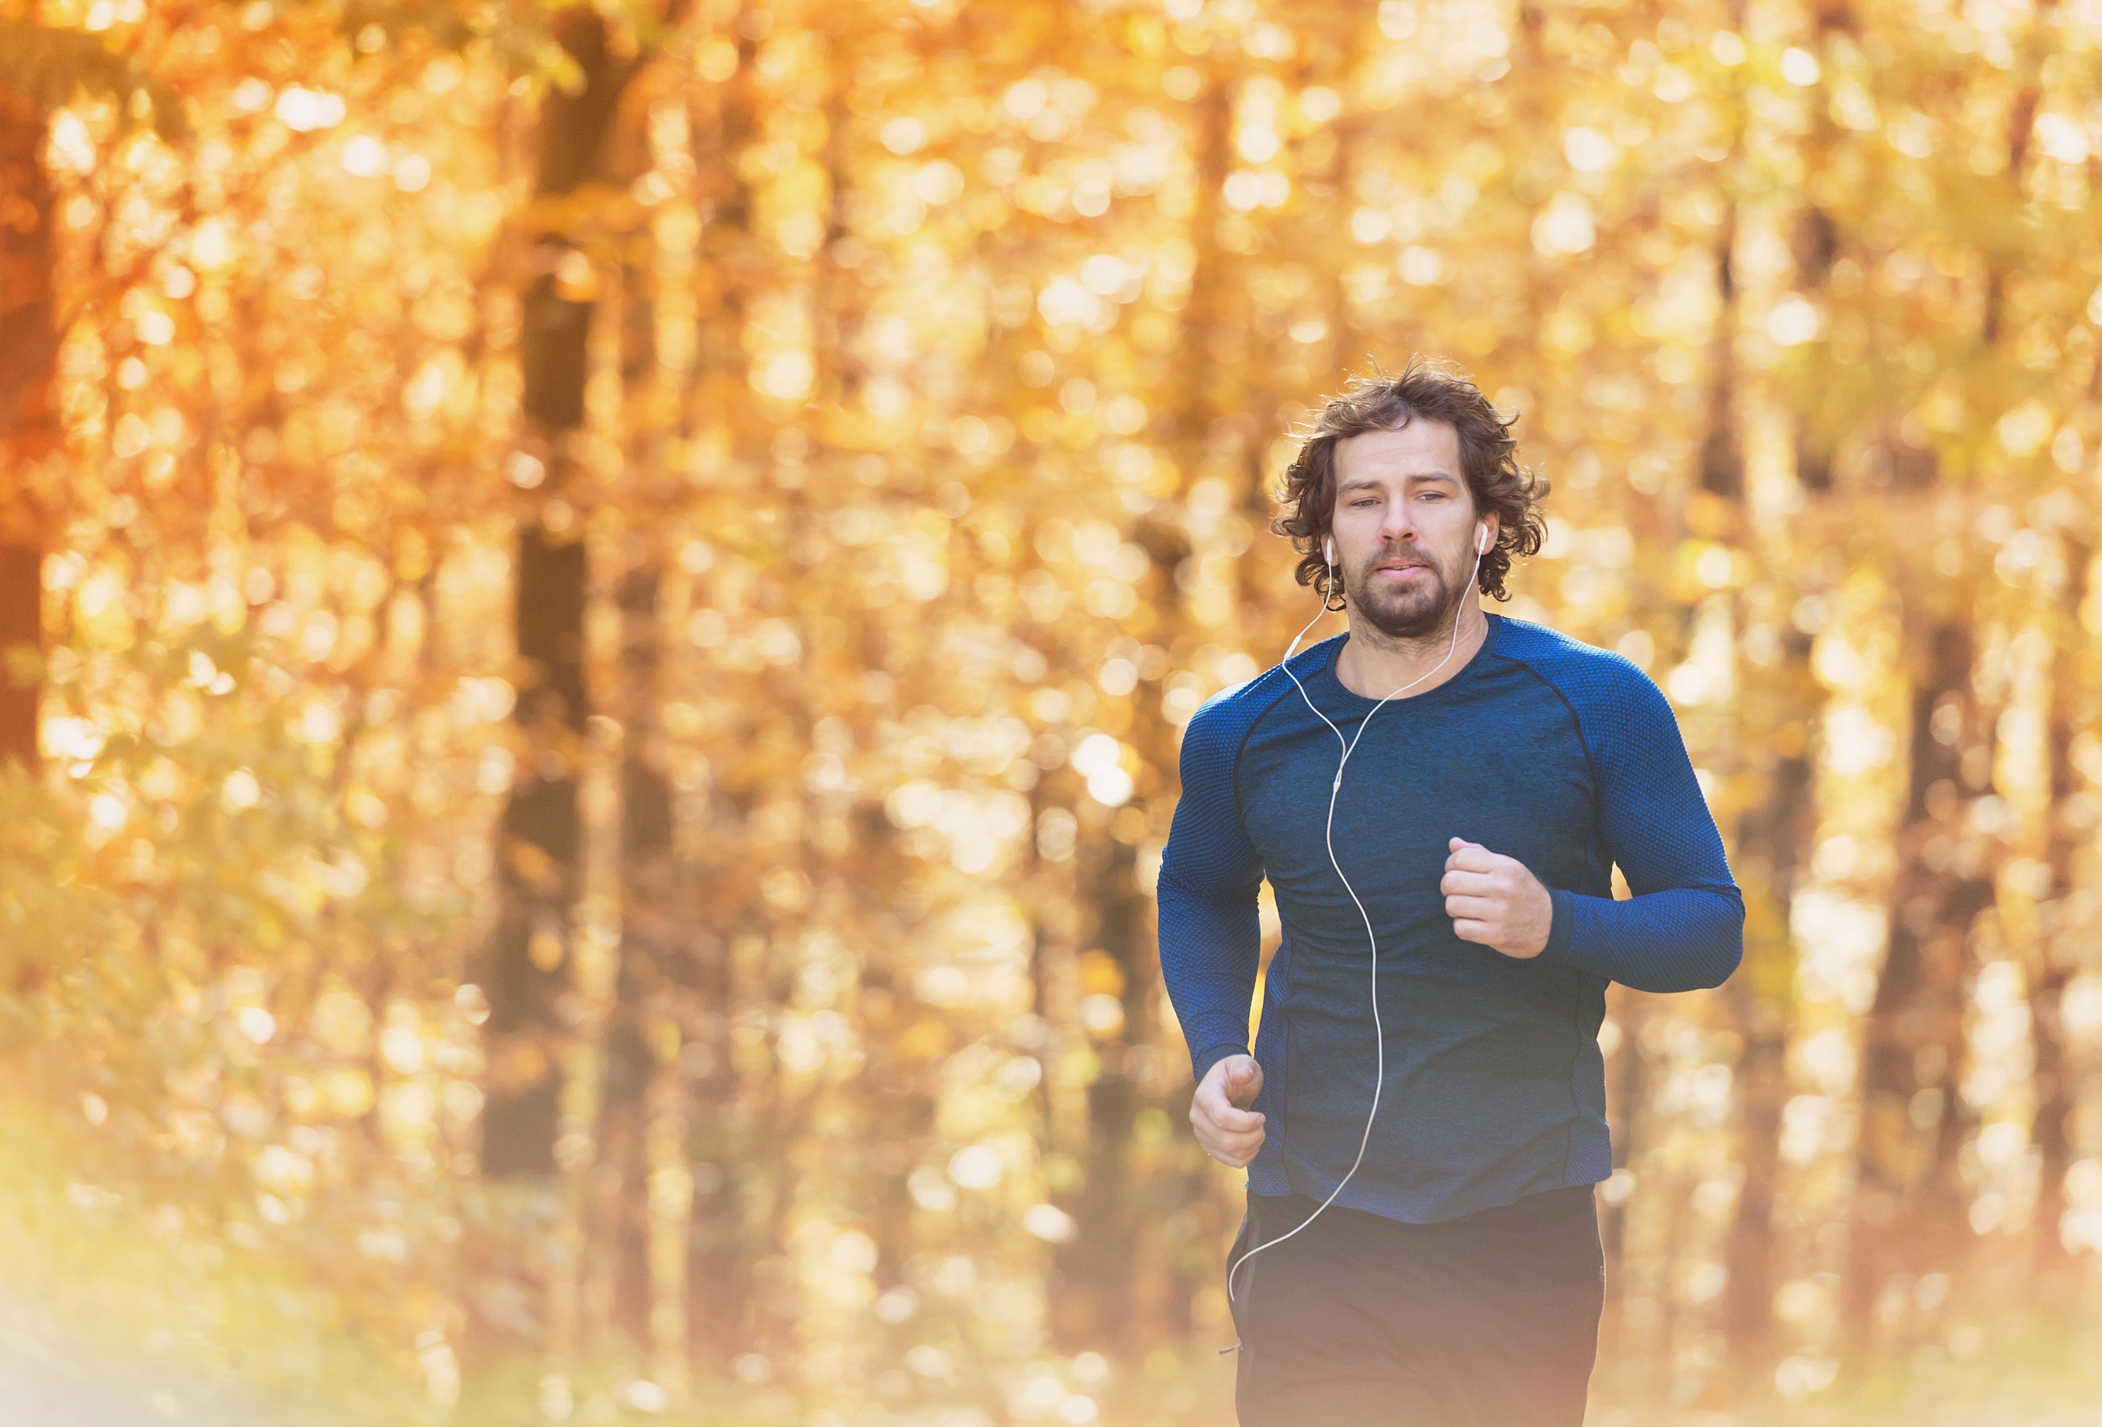 Generic photo of man running with headphones on (Thinkstock/PA)